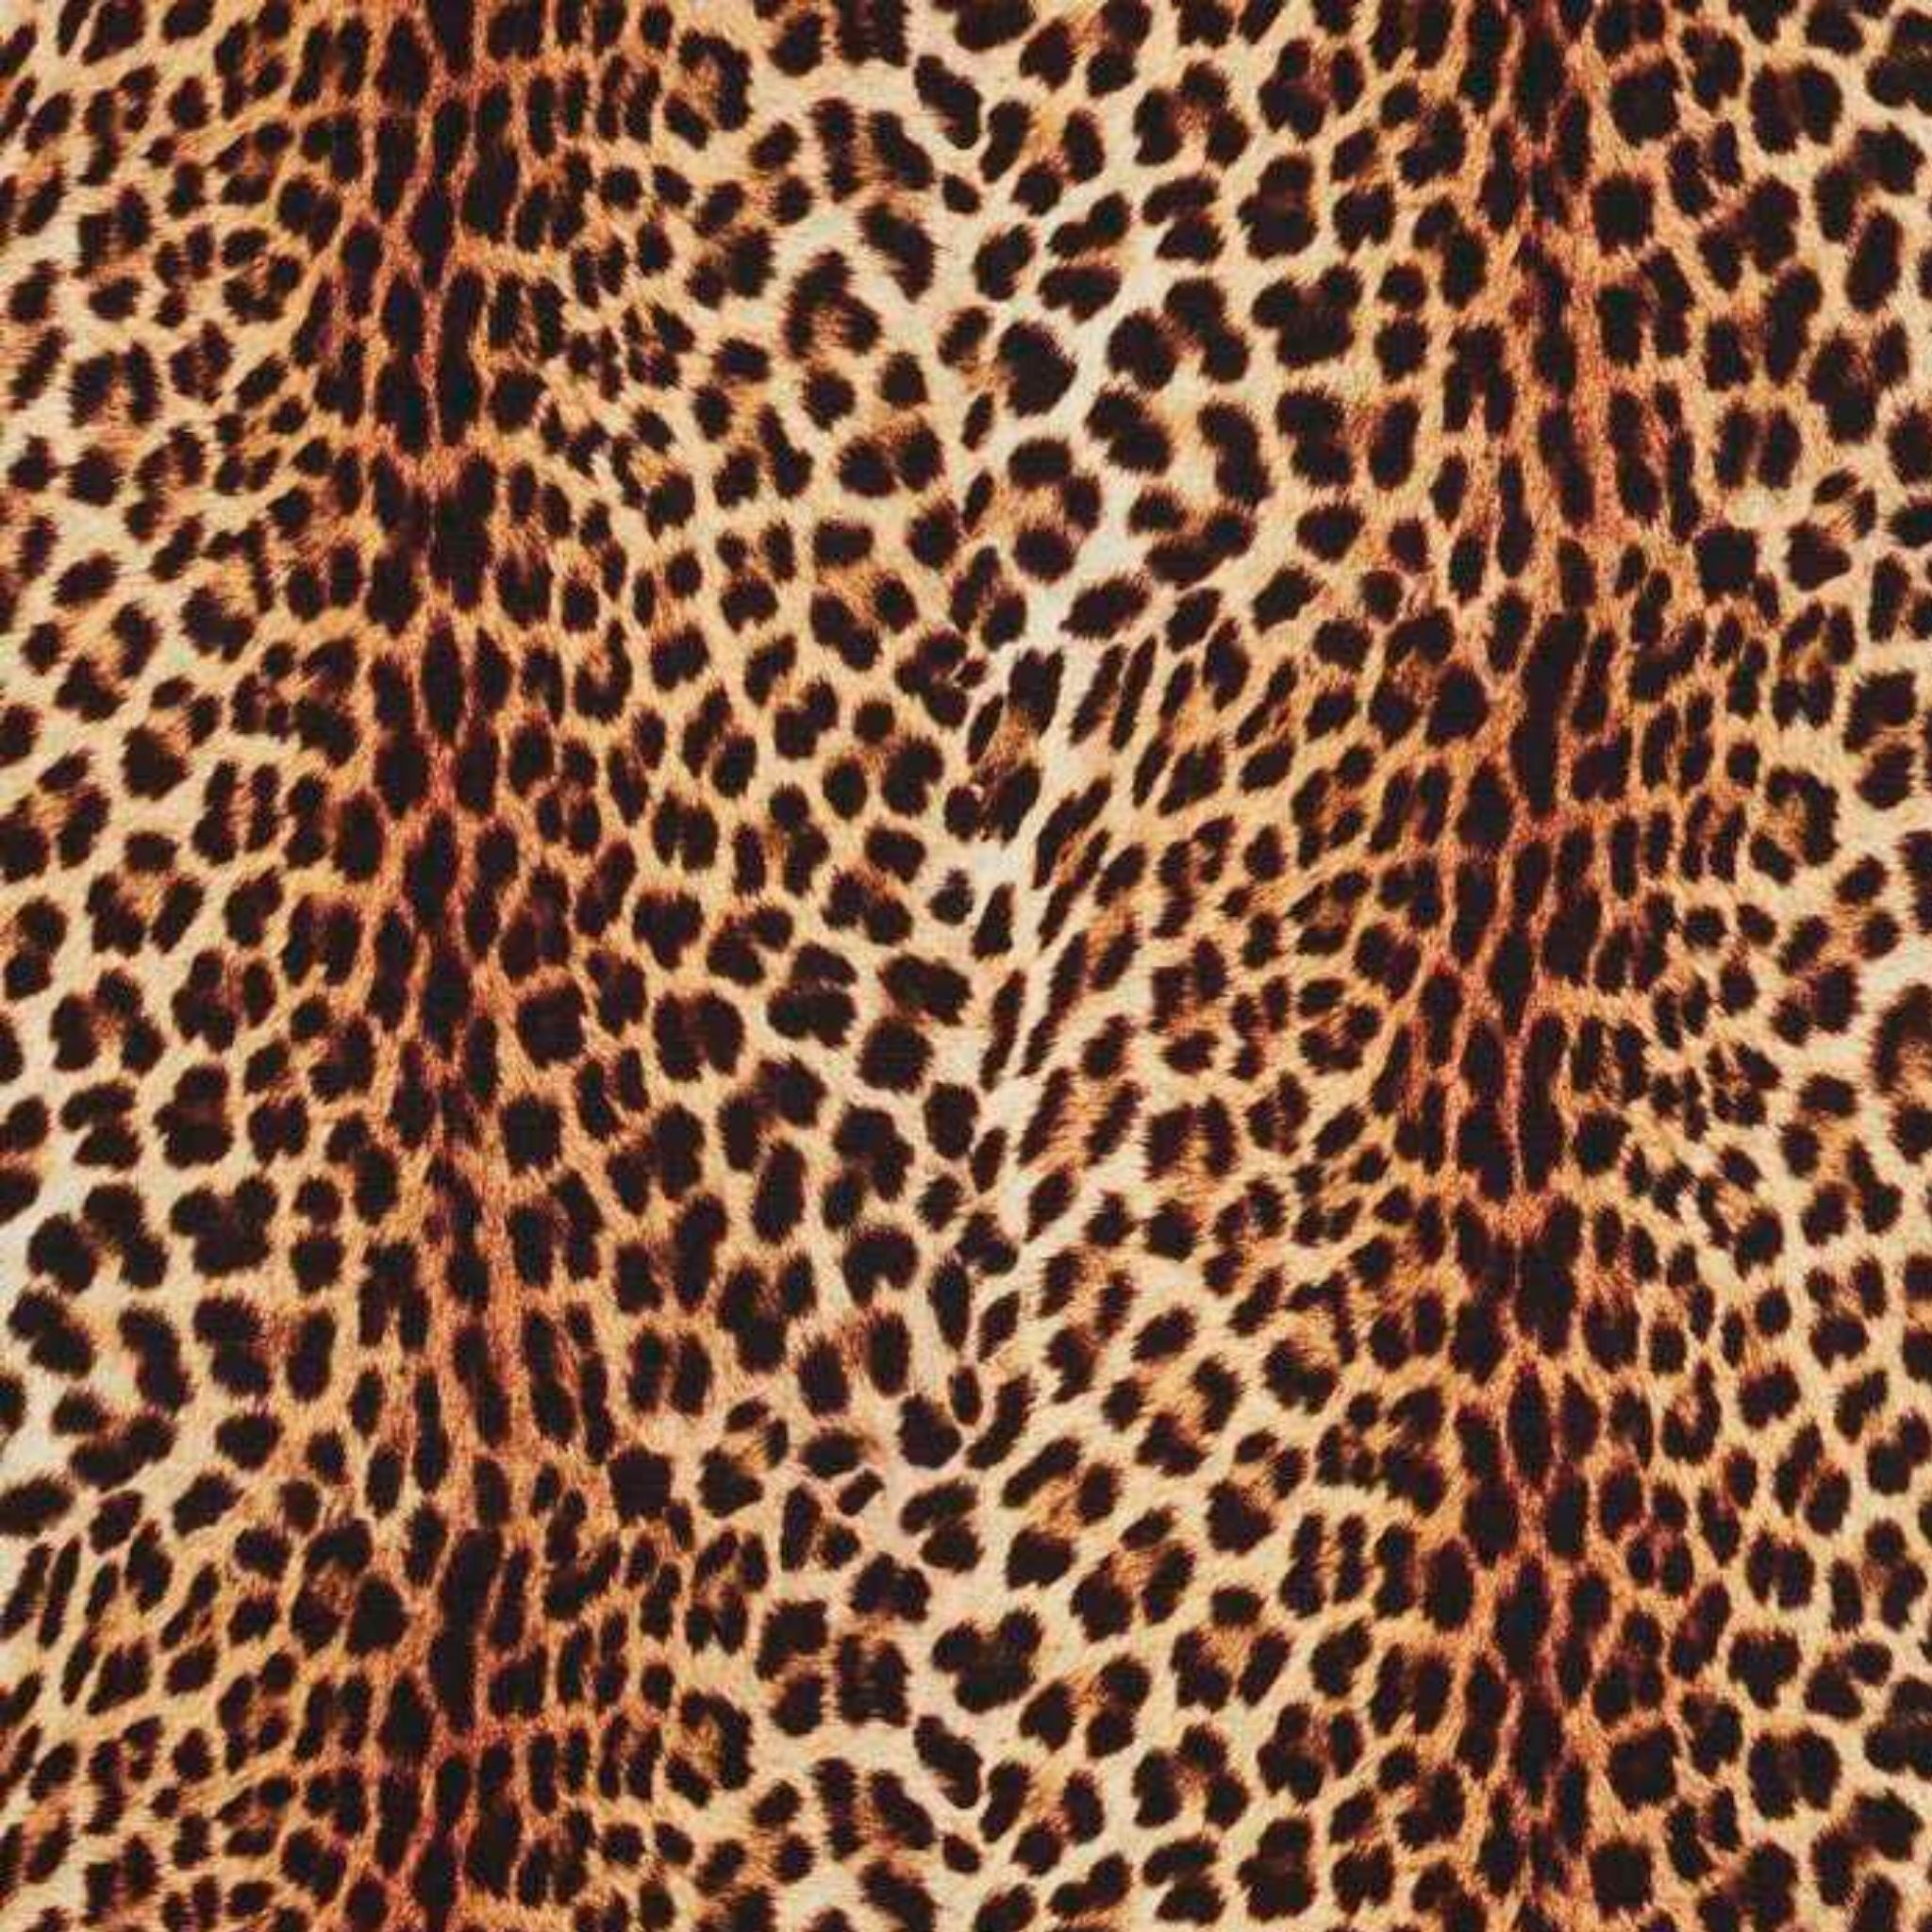 Leopard print, drak brown spots on a light brown background.